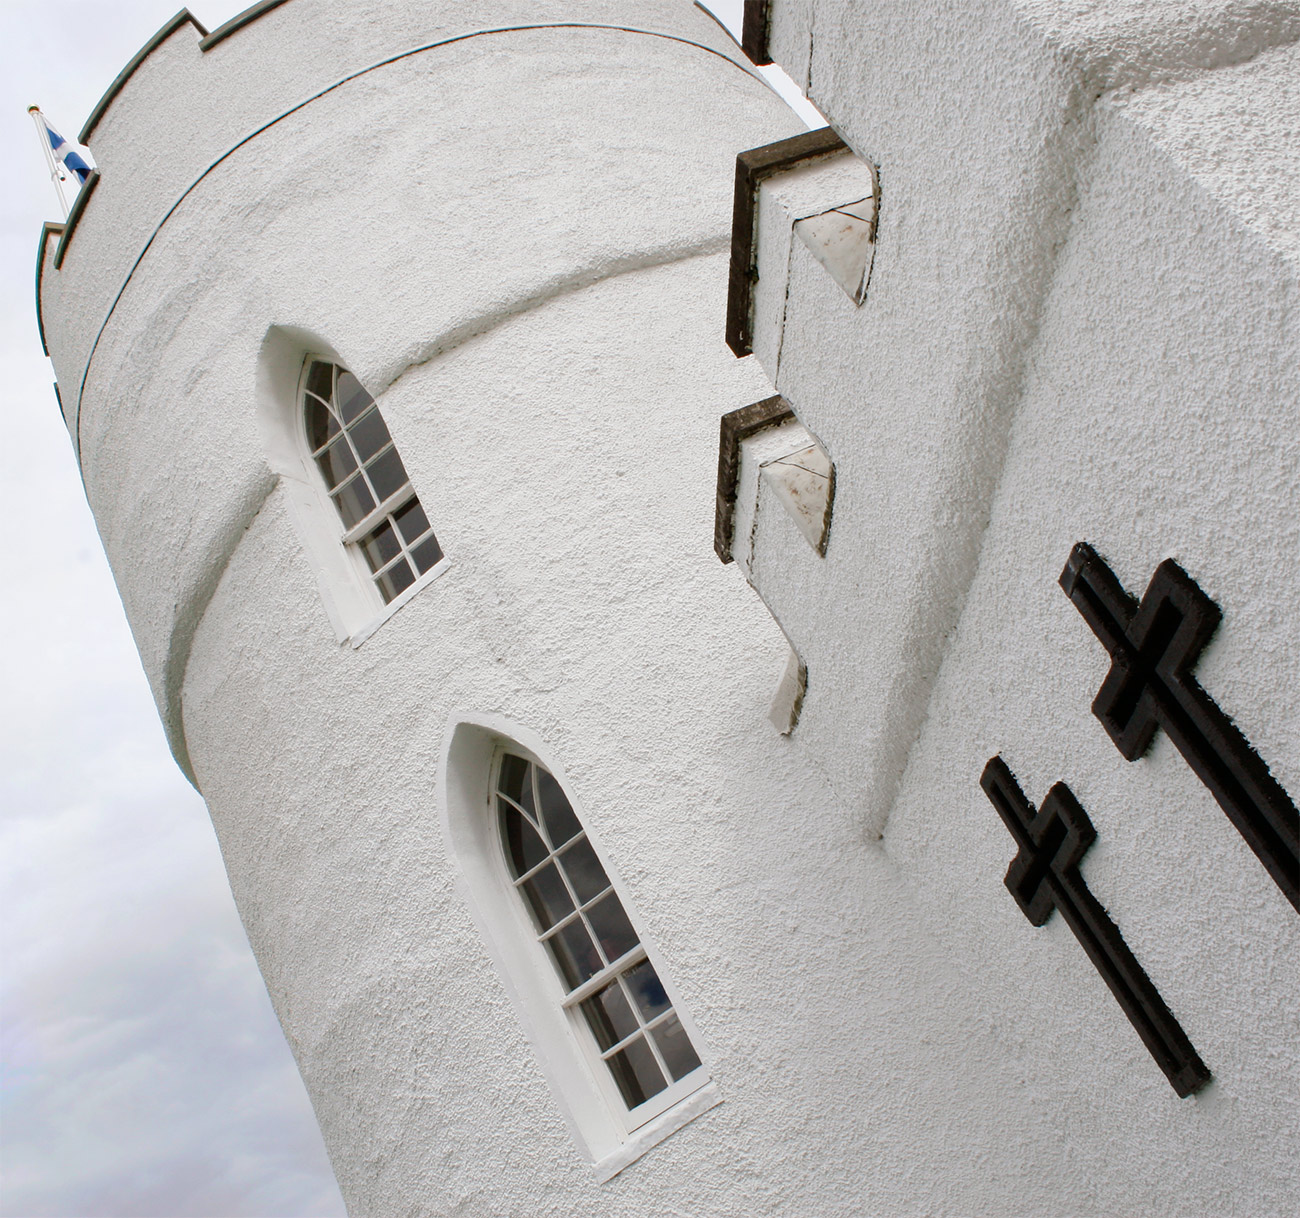 White Tower close-up with arched windows